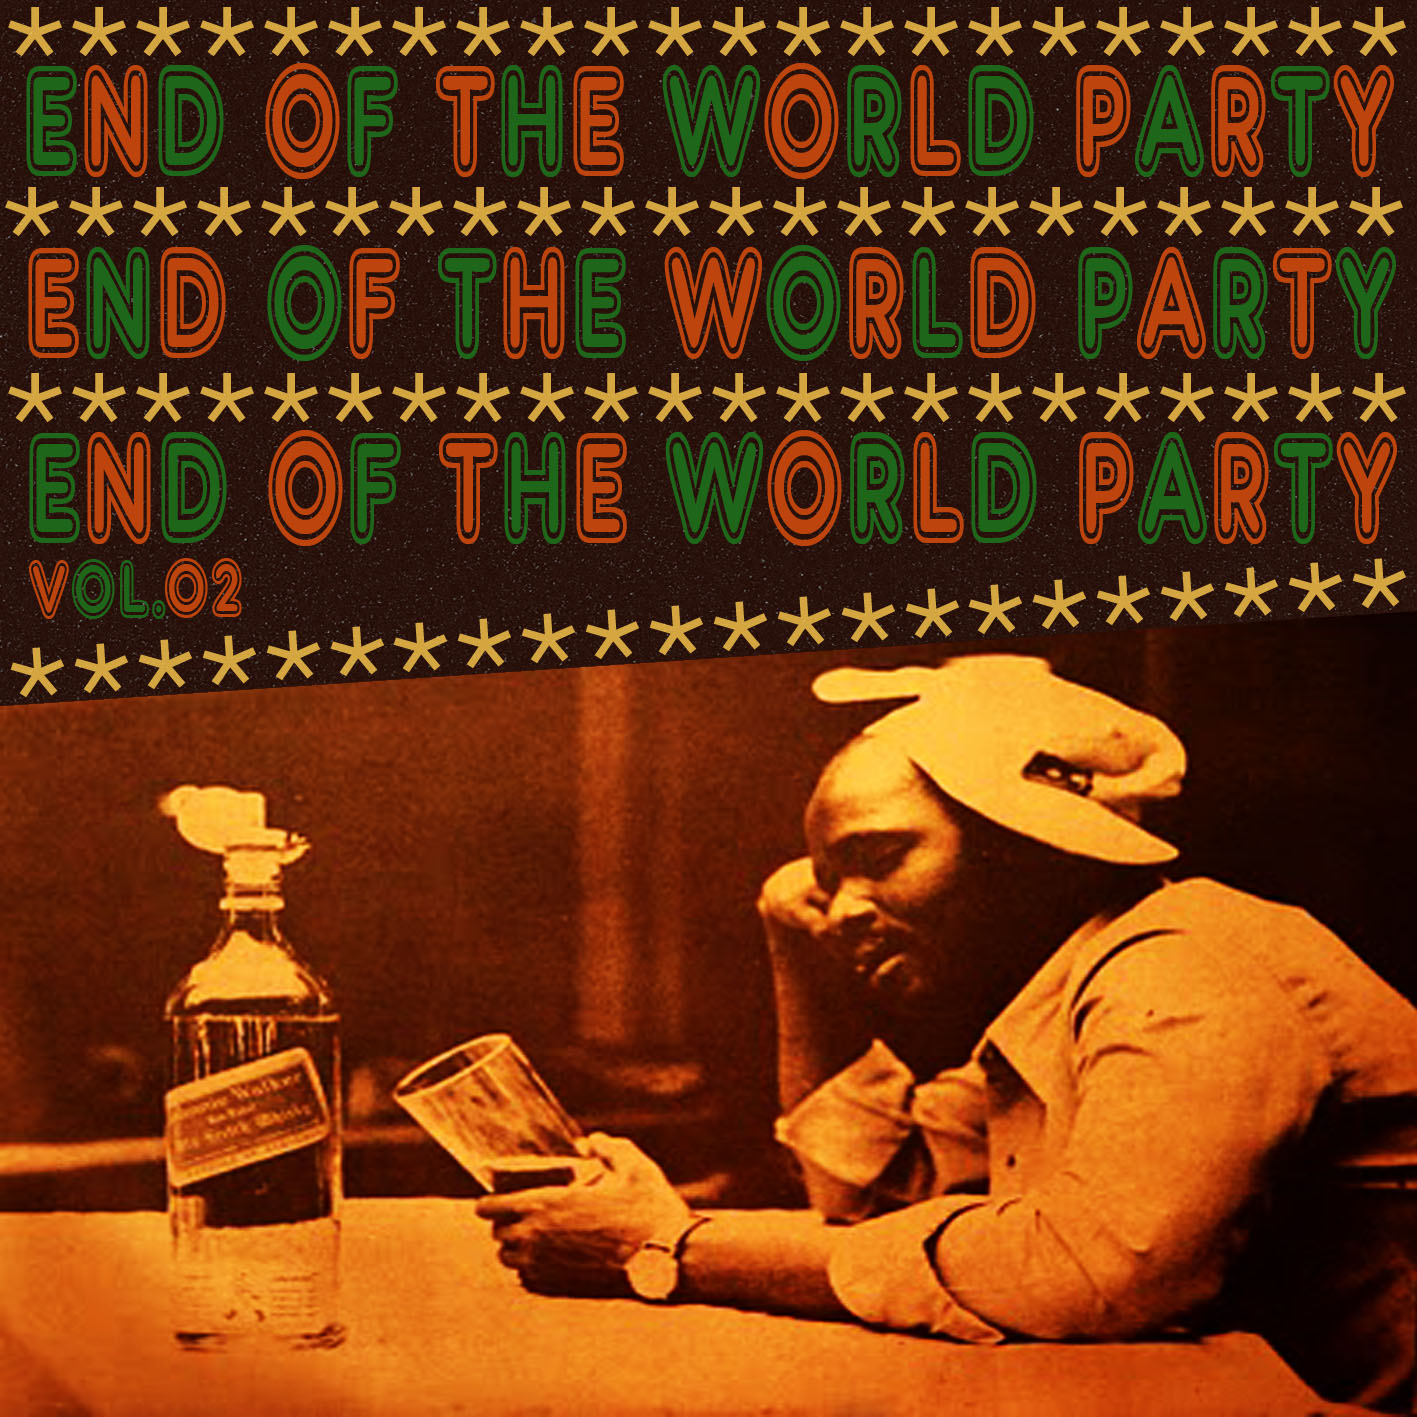 Groovy Party - Volume 1